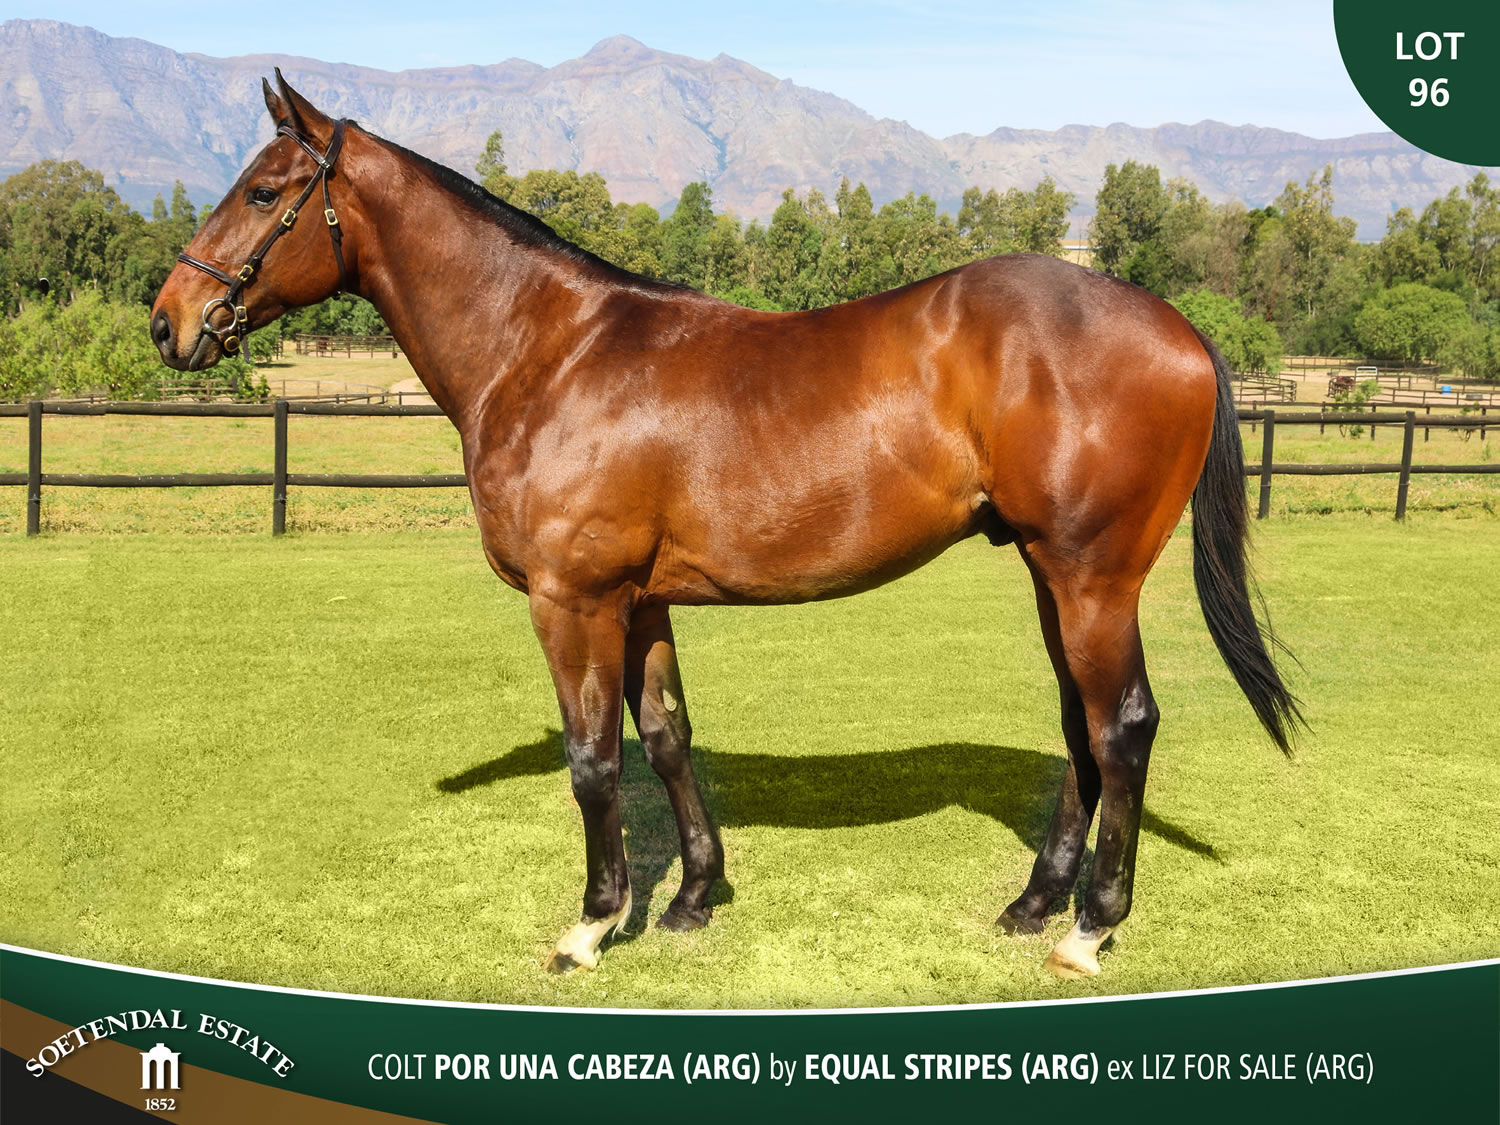 Lot-96-Colt-Por-Una-Cabeza-ARG-by-Equal-Stripes-ARG-ex-Liz-For-Sale-ARG